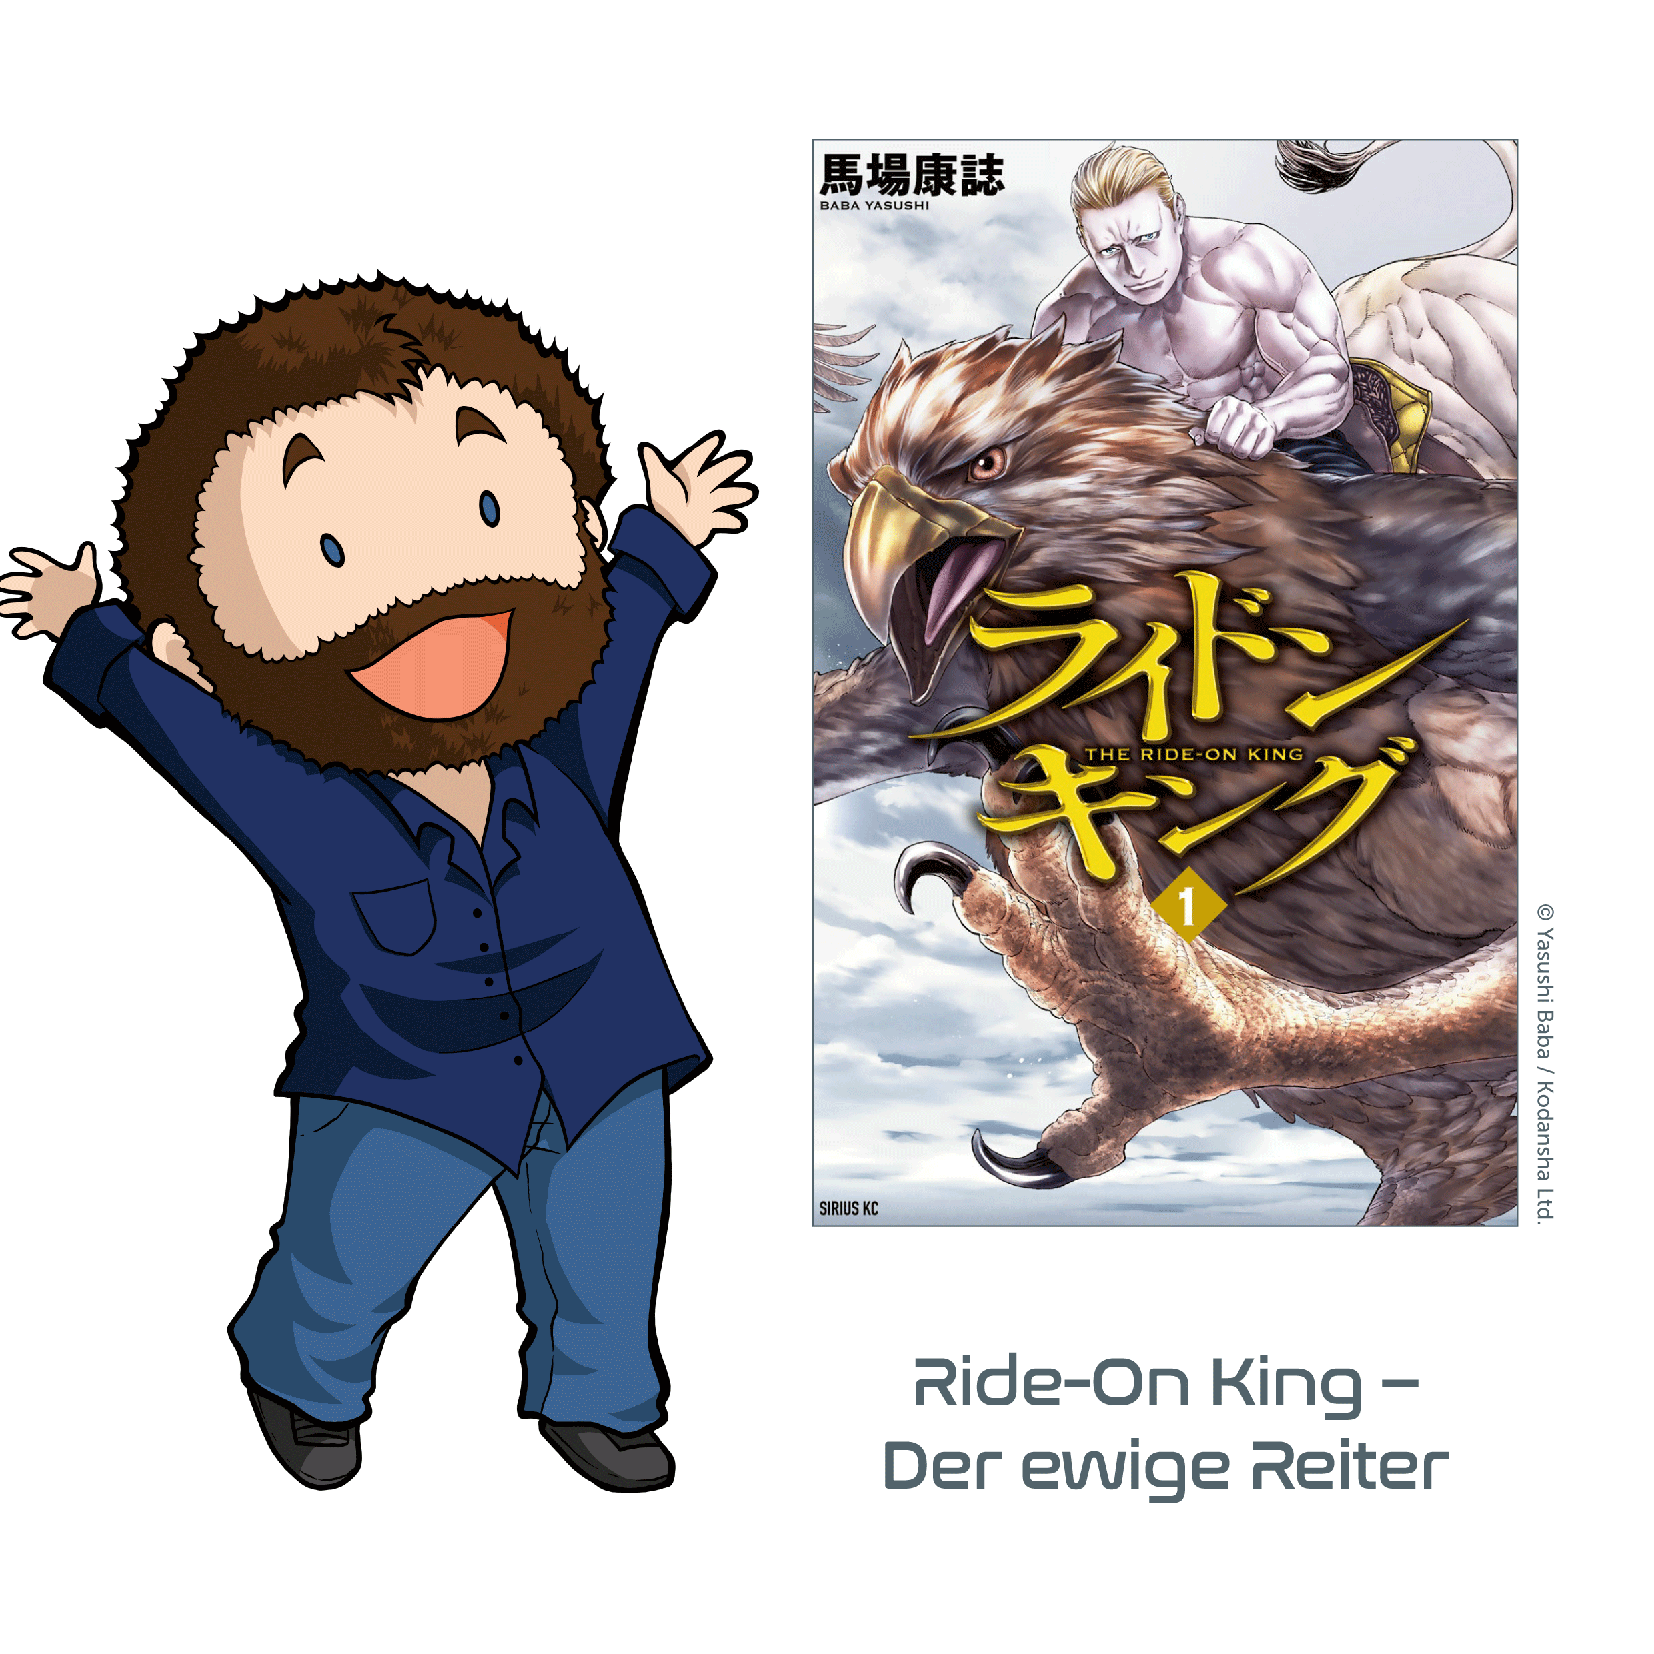 Ride-On King – Der ewige Reiter